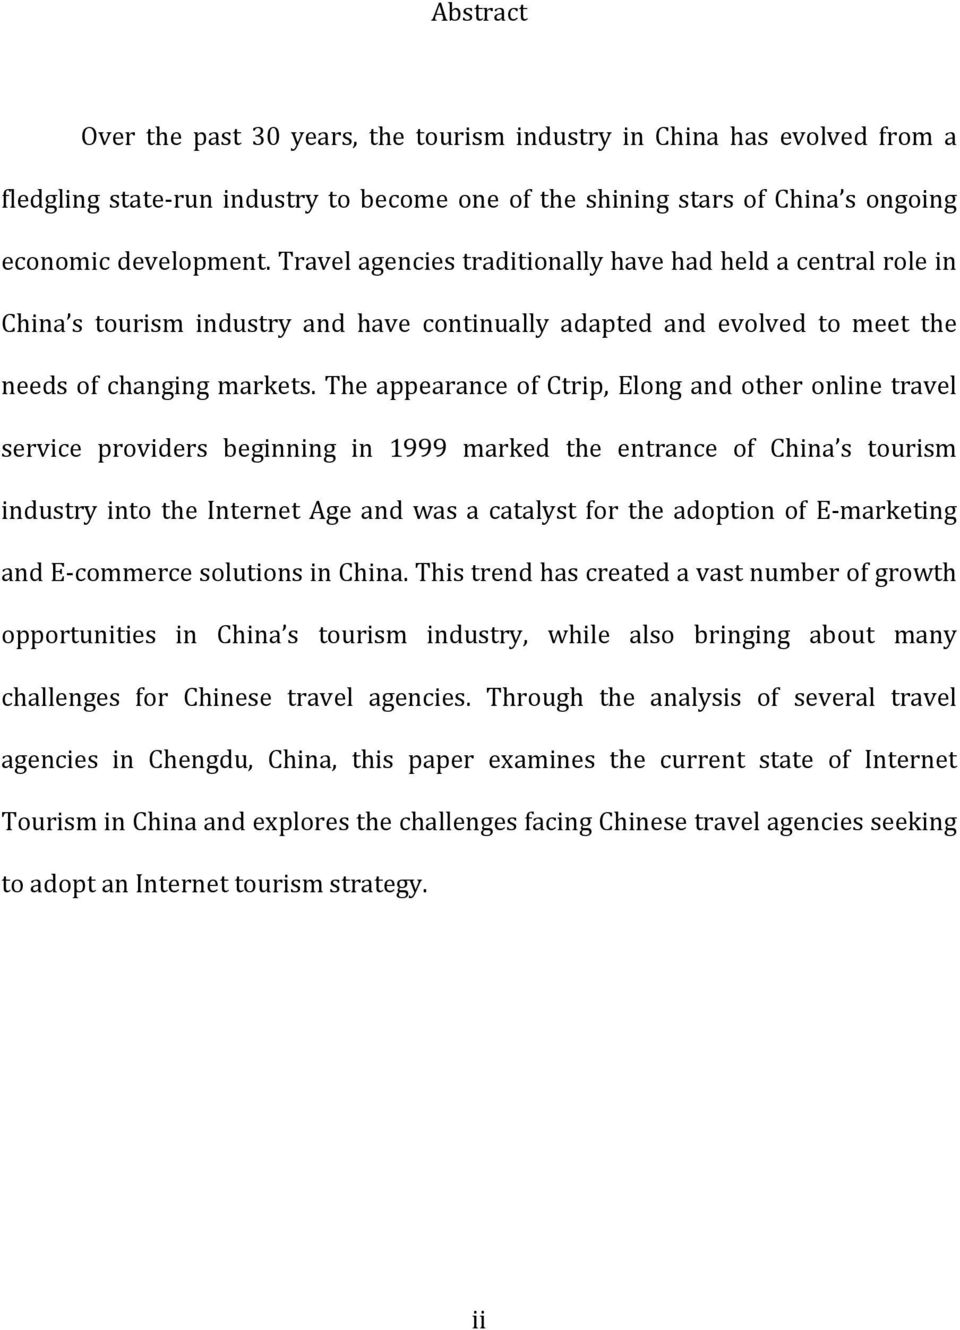 The appearance of Ctrip, Elong and other online travel service providers beginning in 1999 marked the entrance of China s tourism industry into the Internet Age and was a catalyst for the adoption of